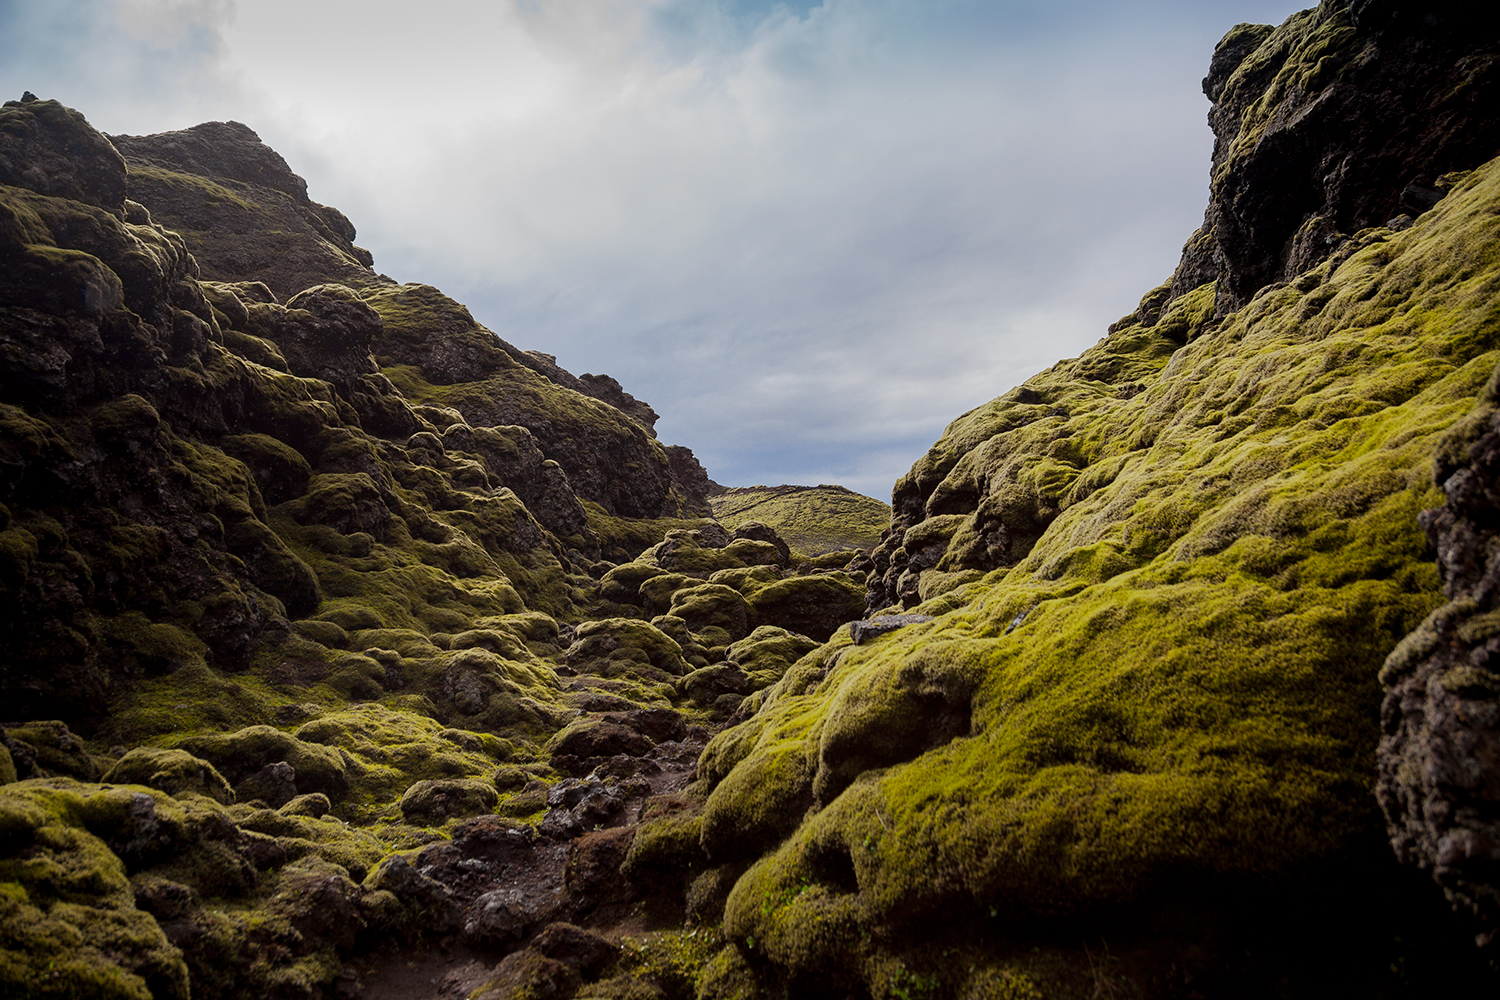 Craters of Laki, Iceland, 2011